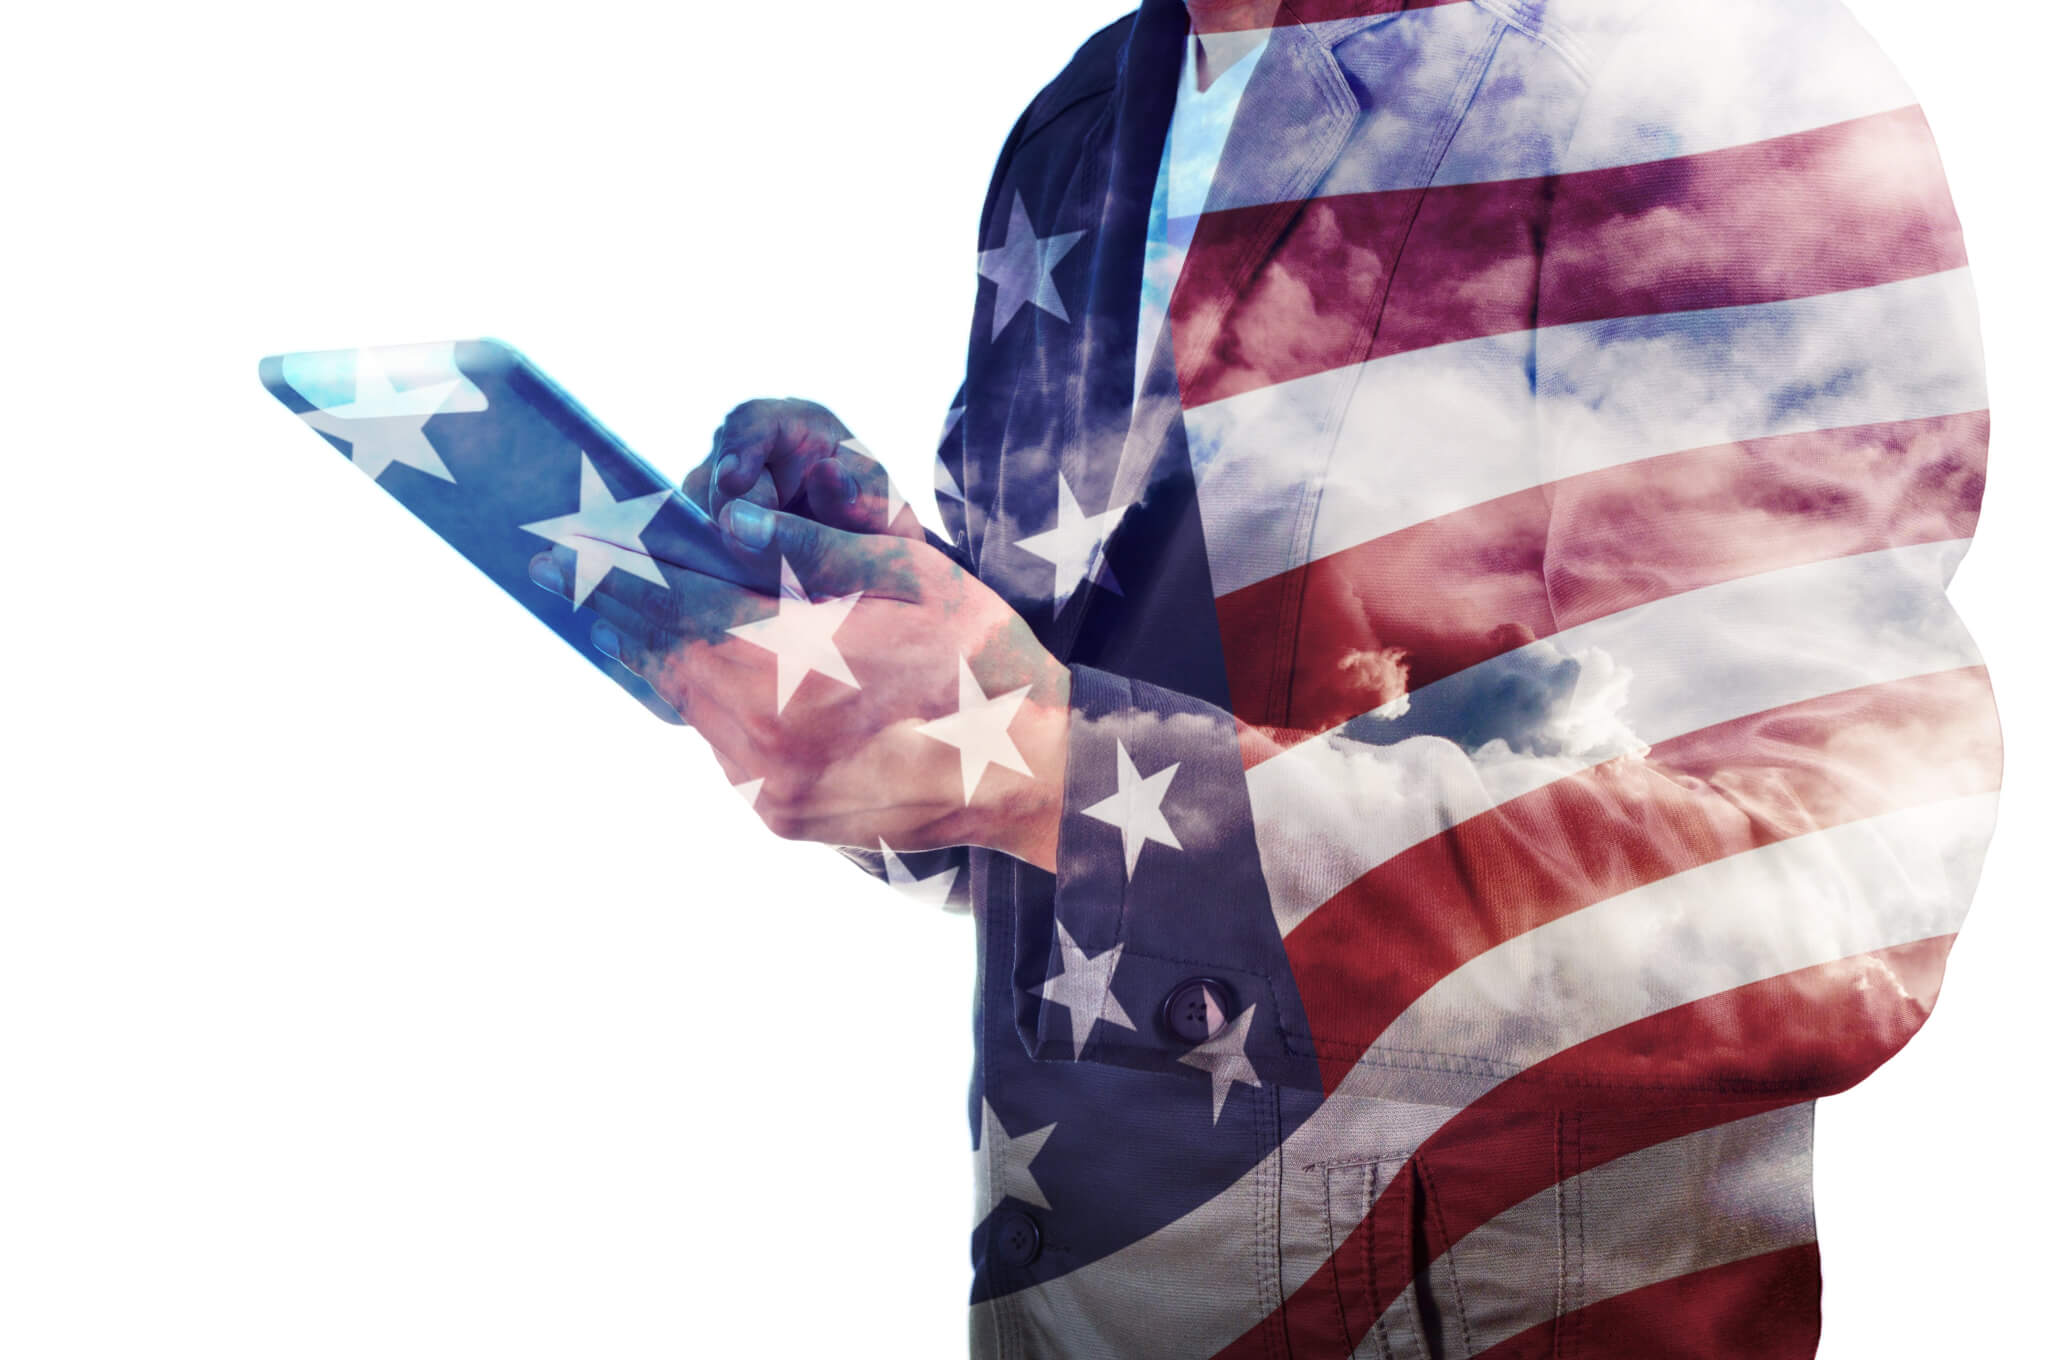 american flag wrapped around person with phone